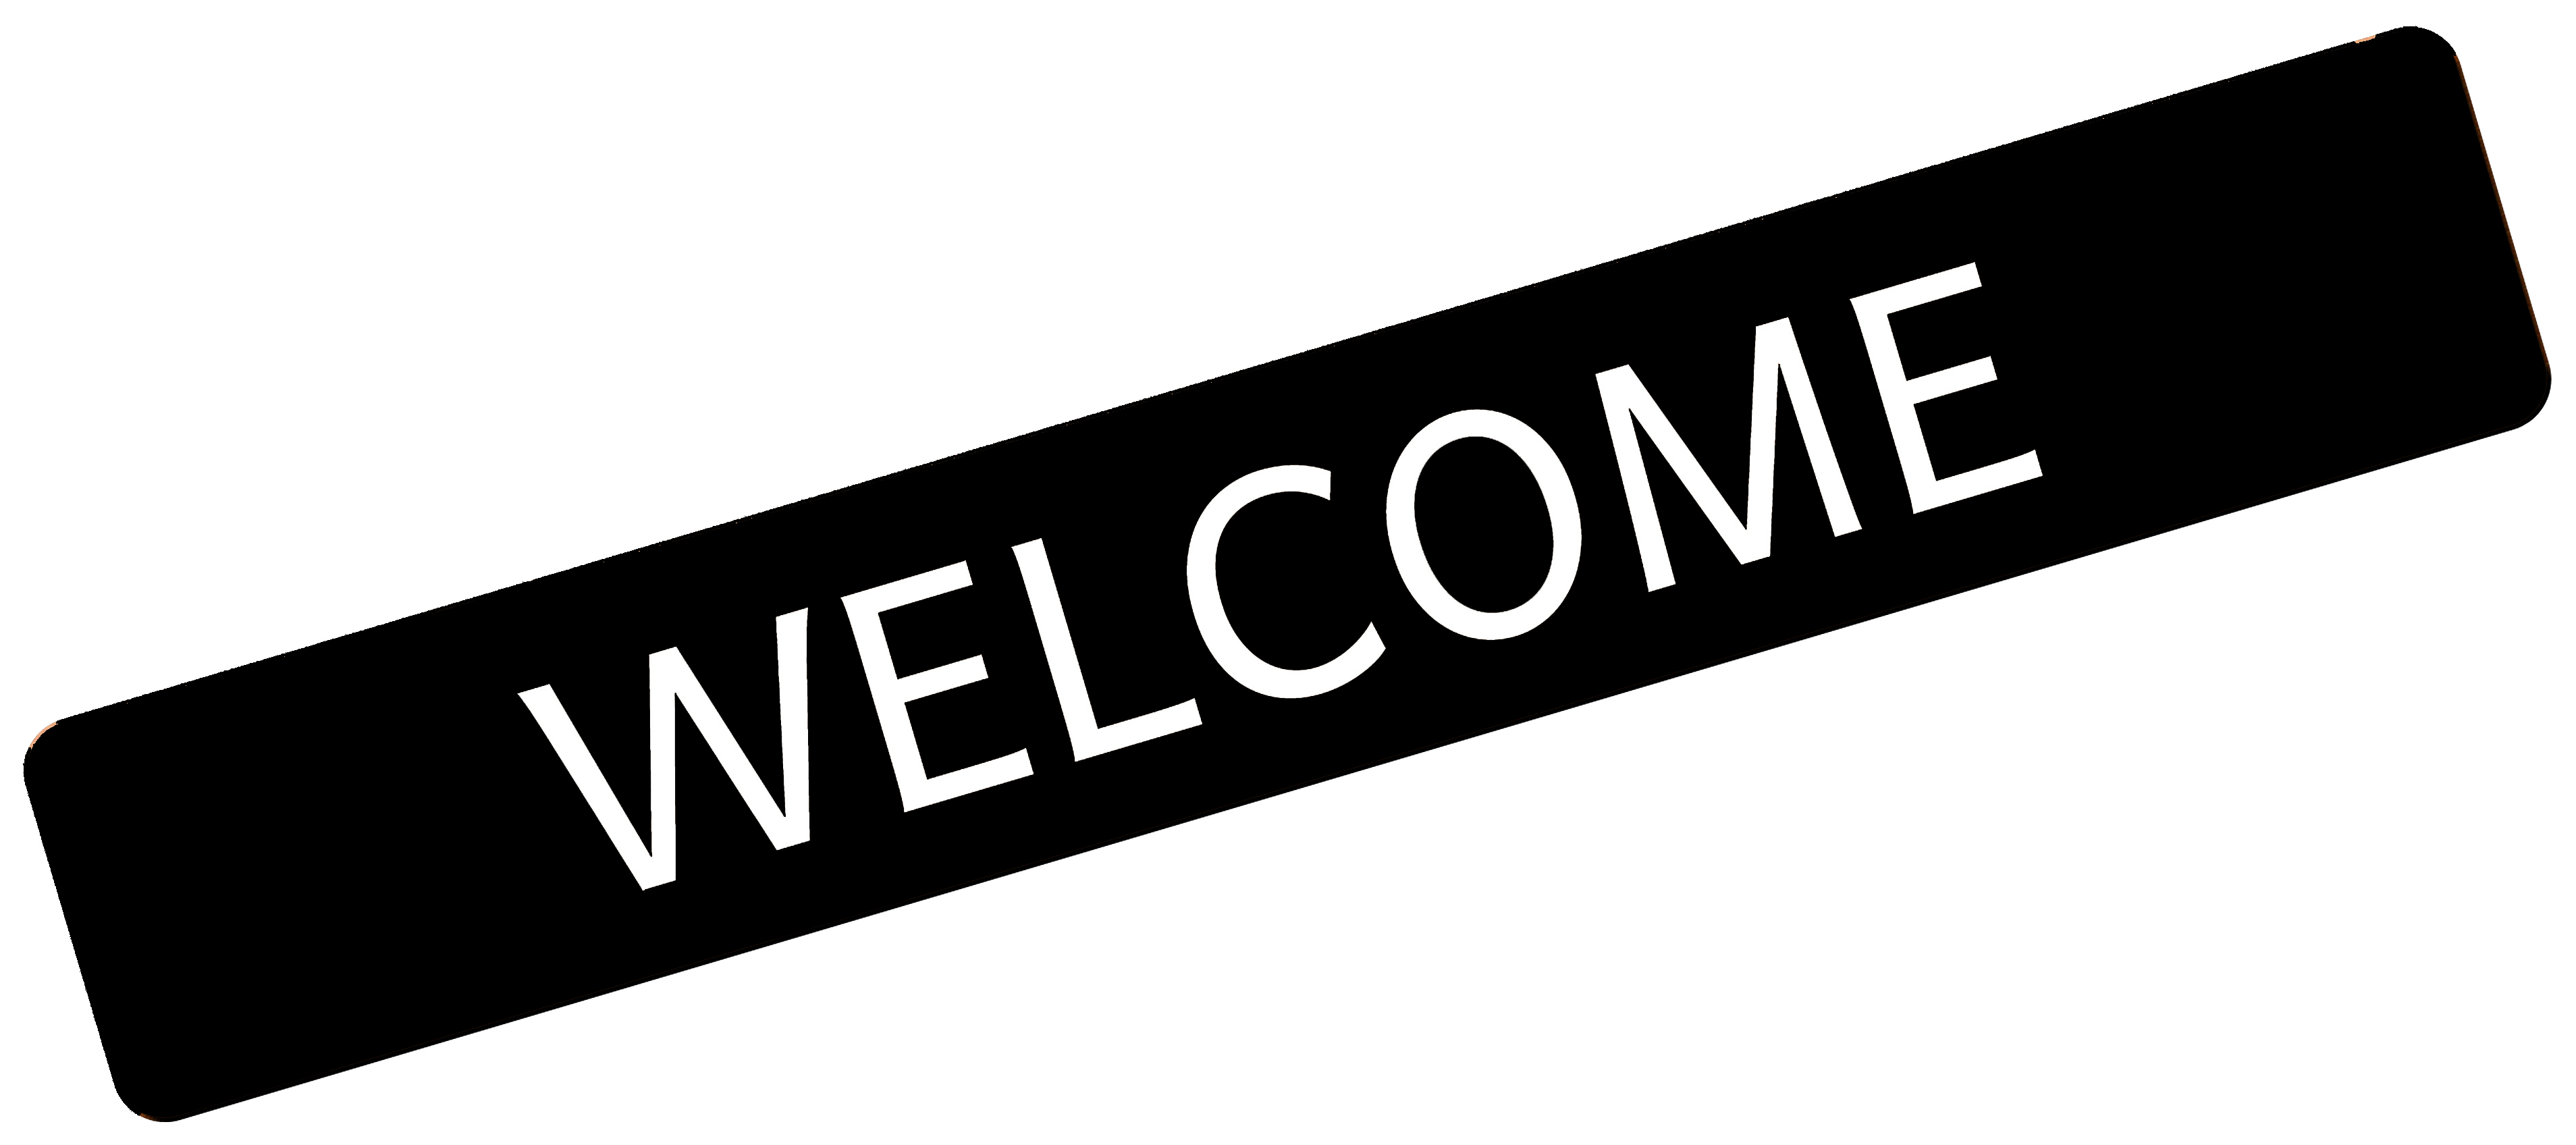 Black and white welcome sign icon